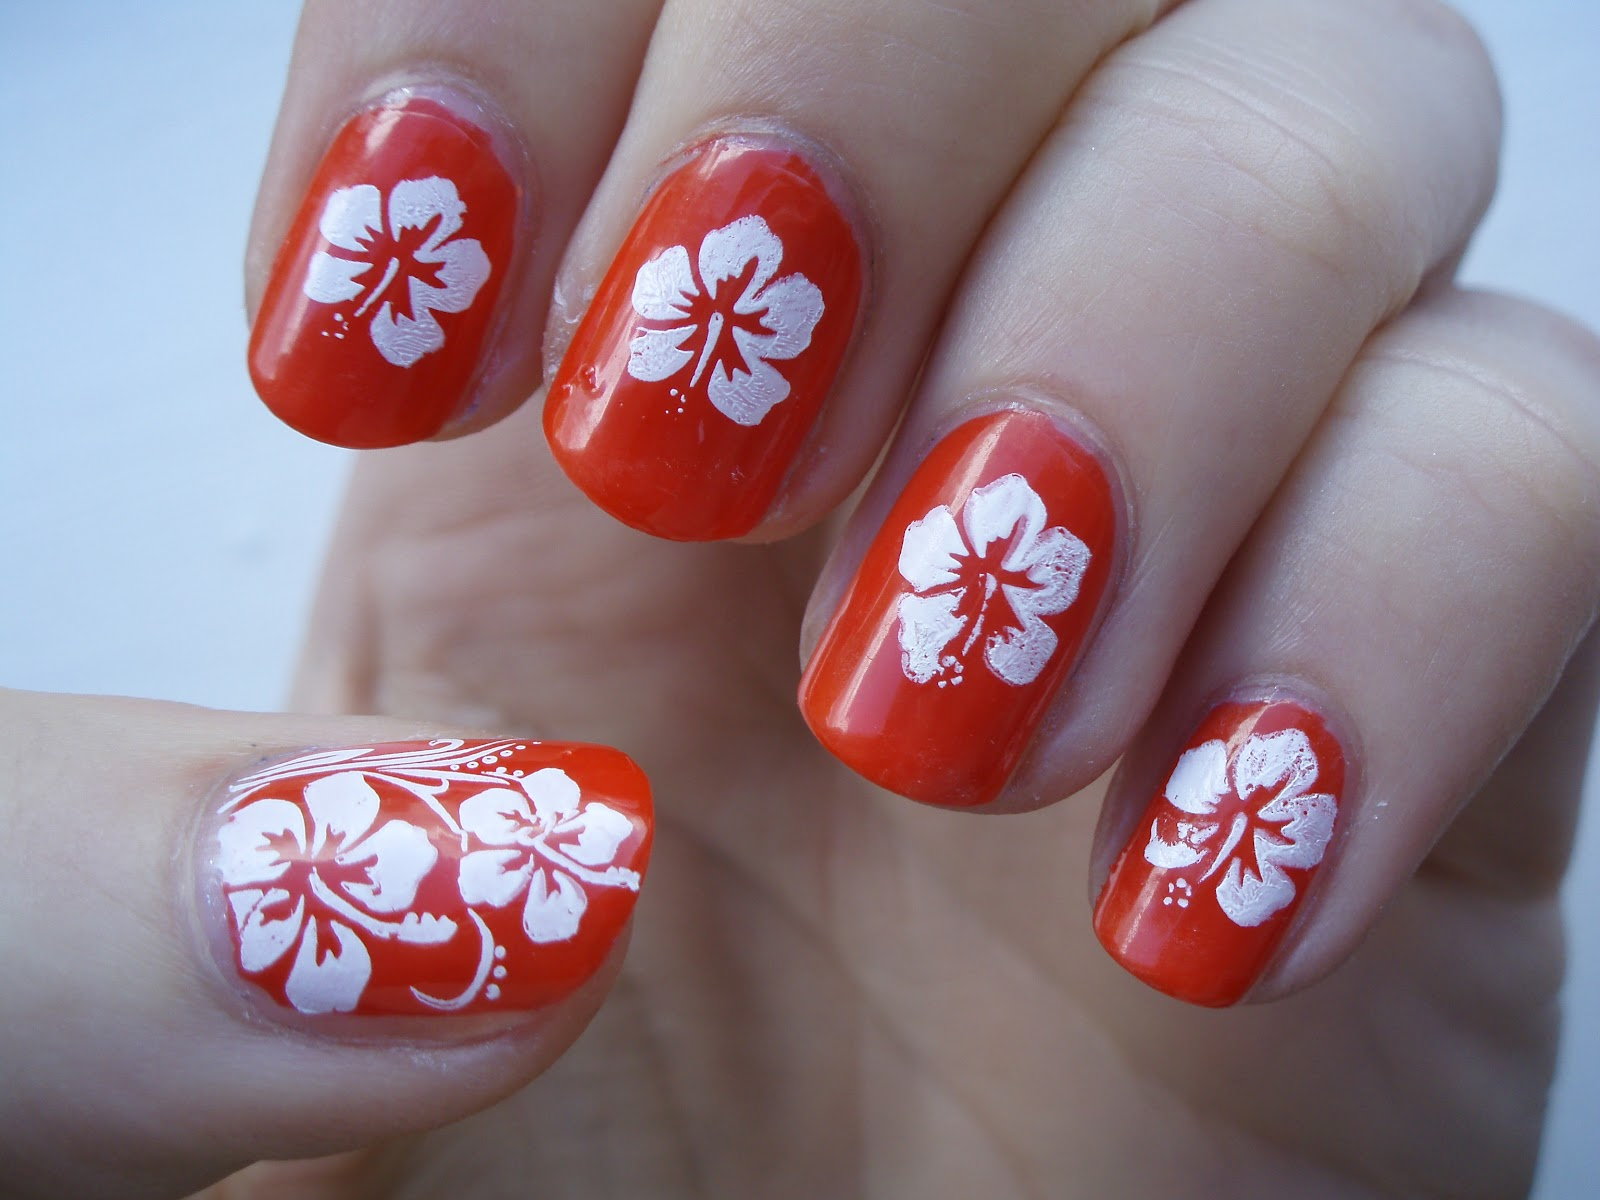 Nail Designs With Flowers | Nail Art Designs